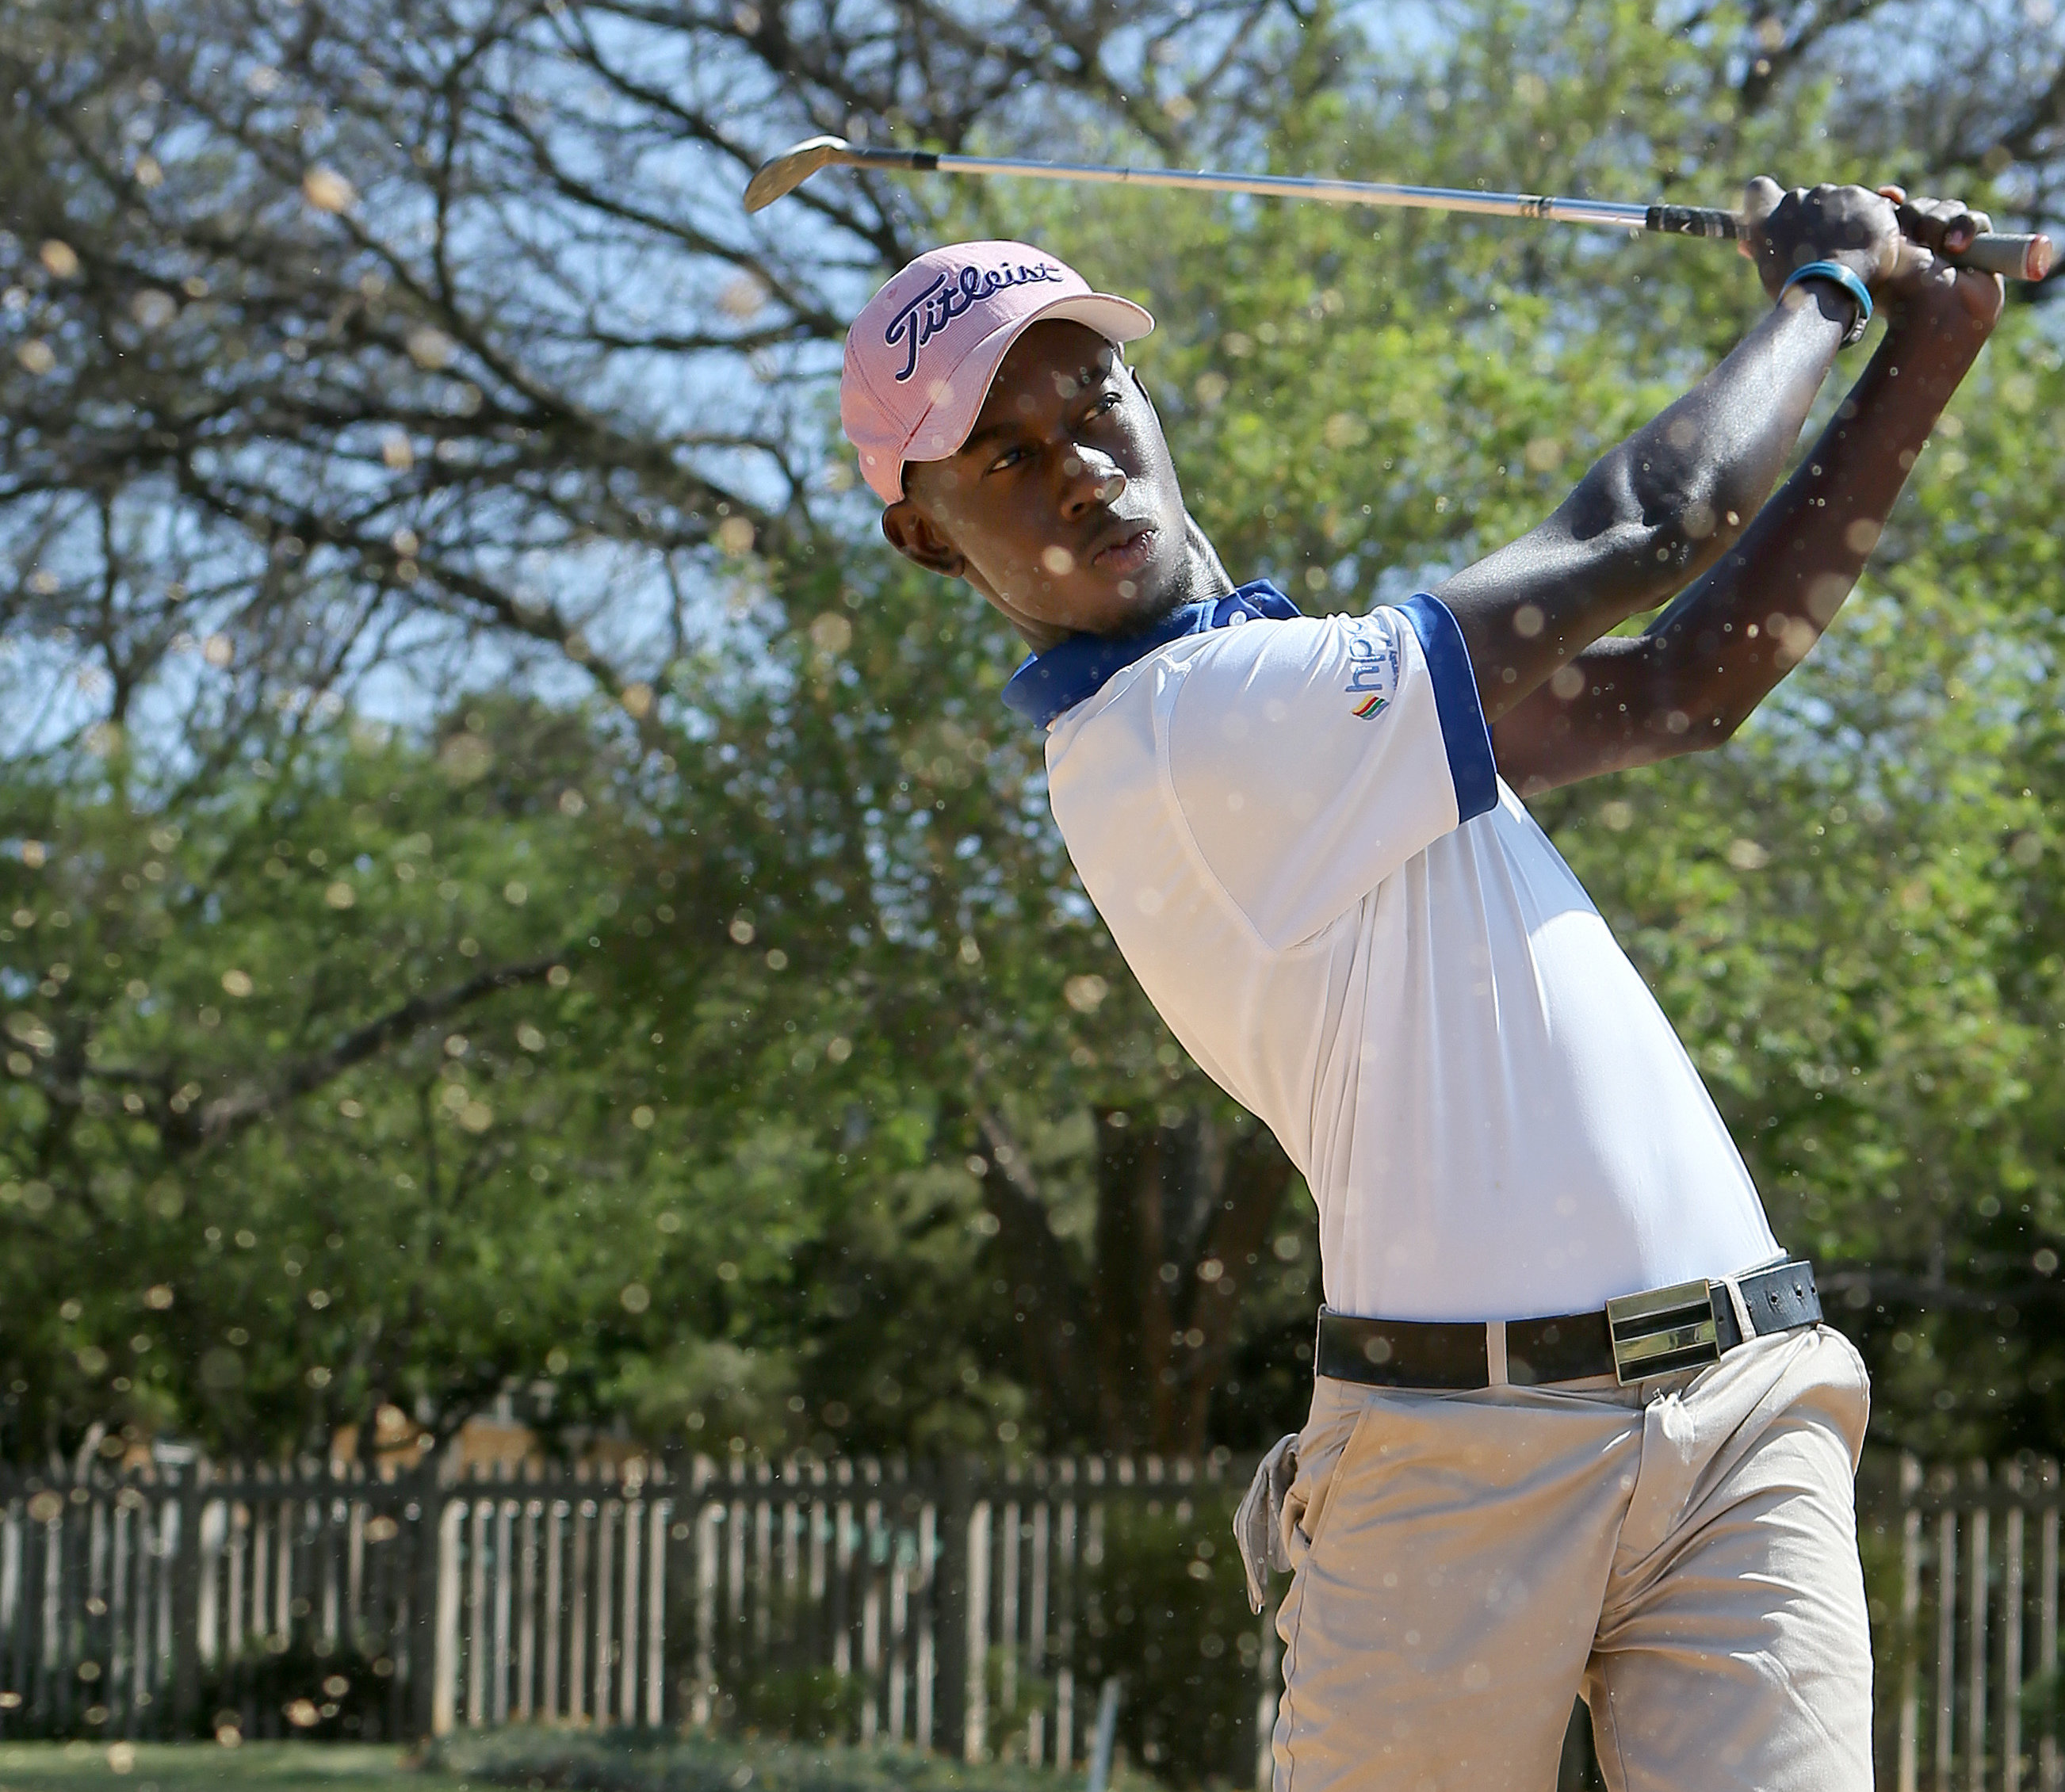 TuksGolf has plan to keep youngsters playing